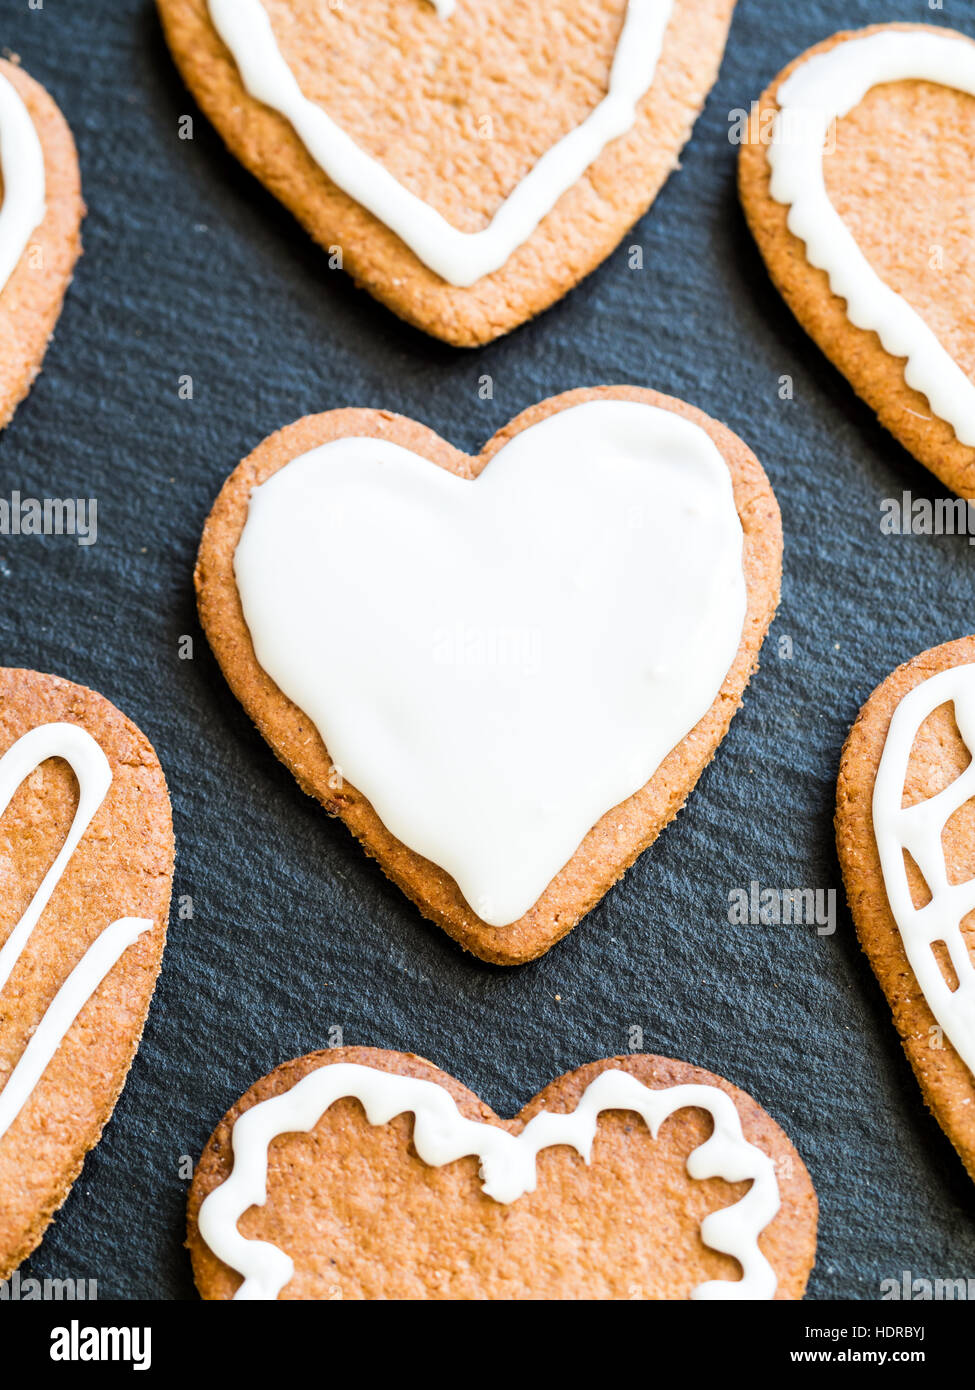 Heart-shaped Christmas gingerbread cookies on a dark background. - Stock Image